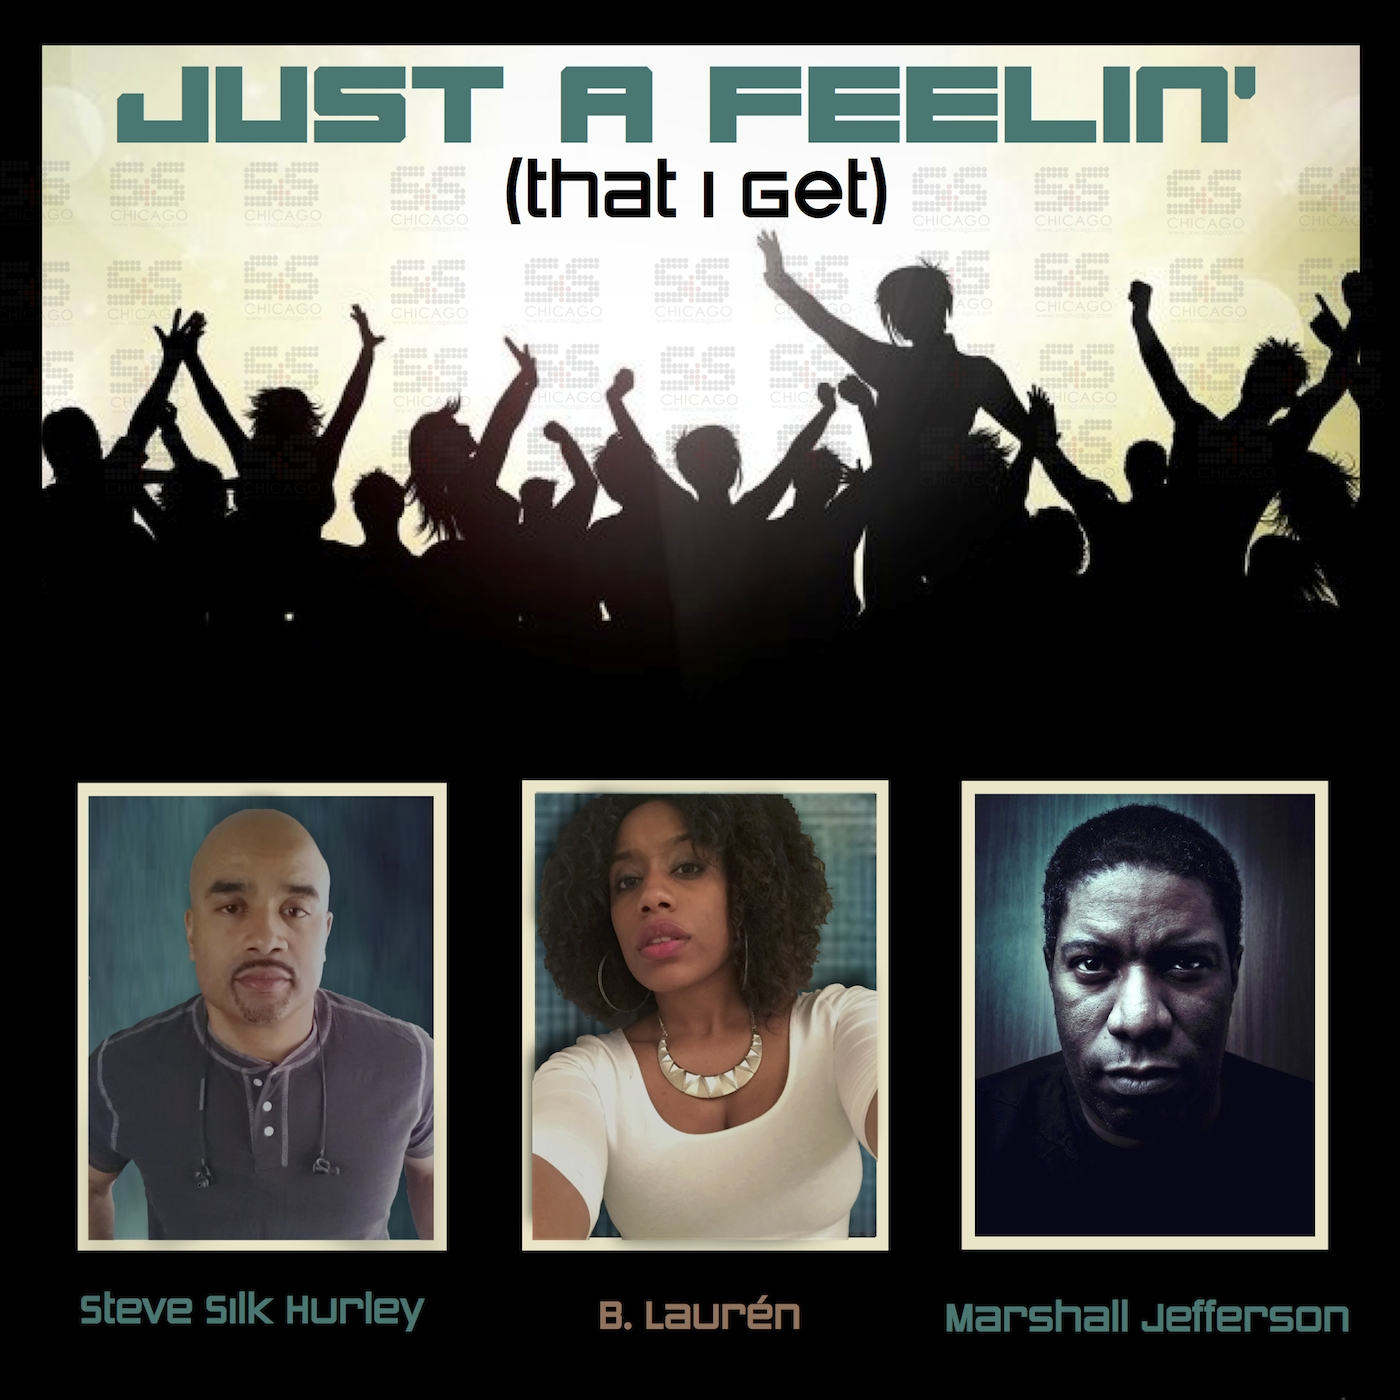 Steve &quote;Silk&quote; Hurley, Marshall Jefferson, B Lauren - Its Just A Feelin (That I Get)